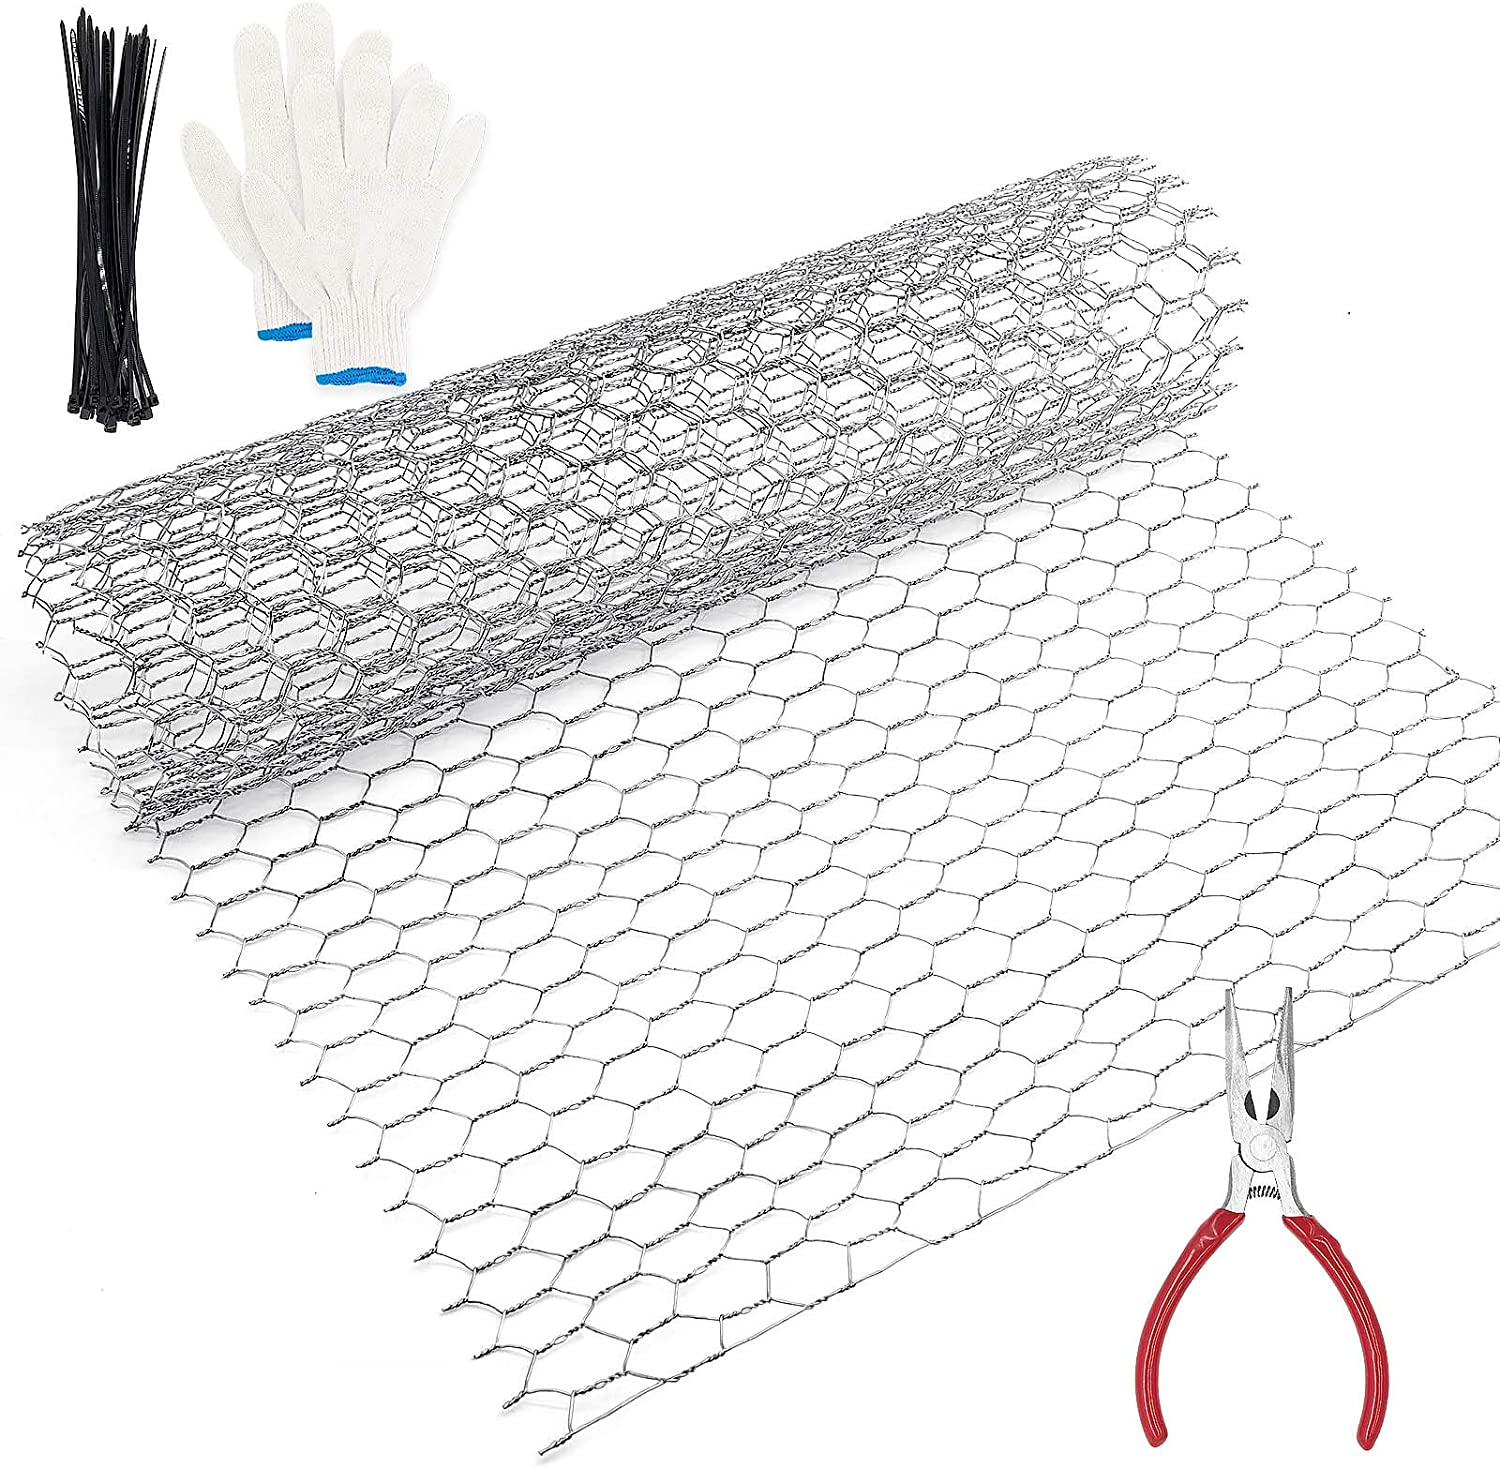 Chicken Wire Fence, Chicken Wire for Craft, Floral Chicken Wire, Chicken Wite Galvanized Hexagonal Wire Fencing 13.7X 40x 0.63Inch with Gloves, Cable Ties and Plier-10 Feet (3 Sheets)